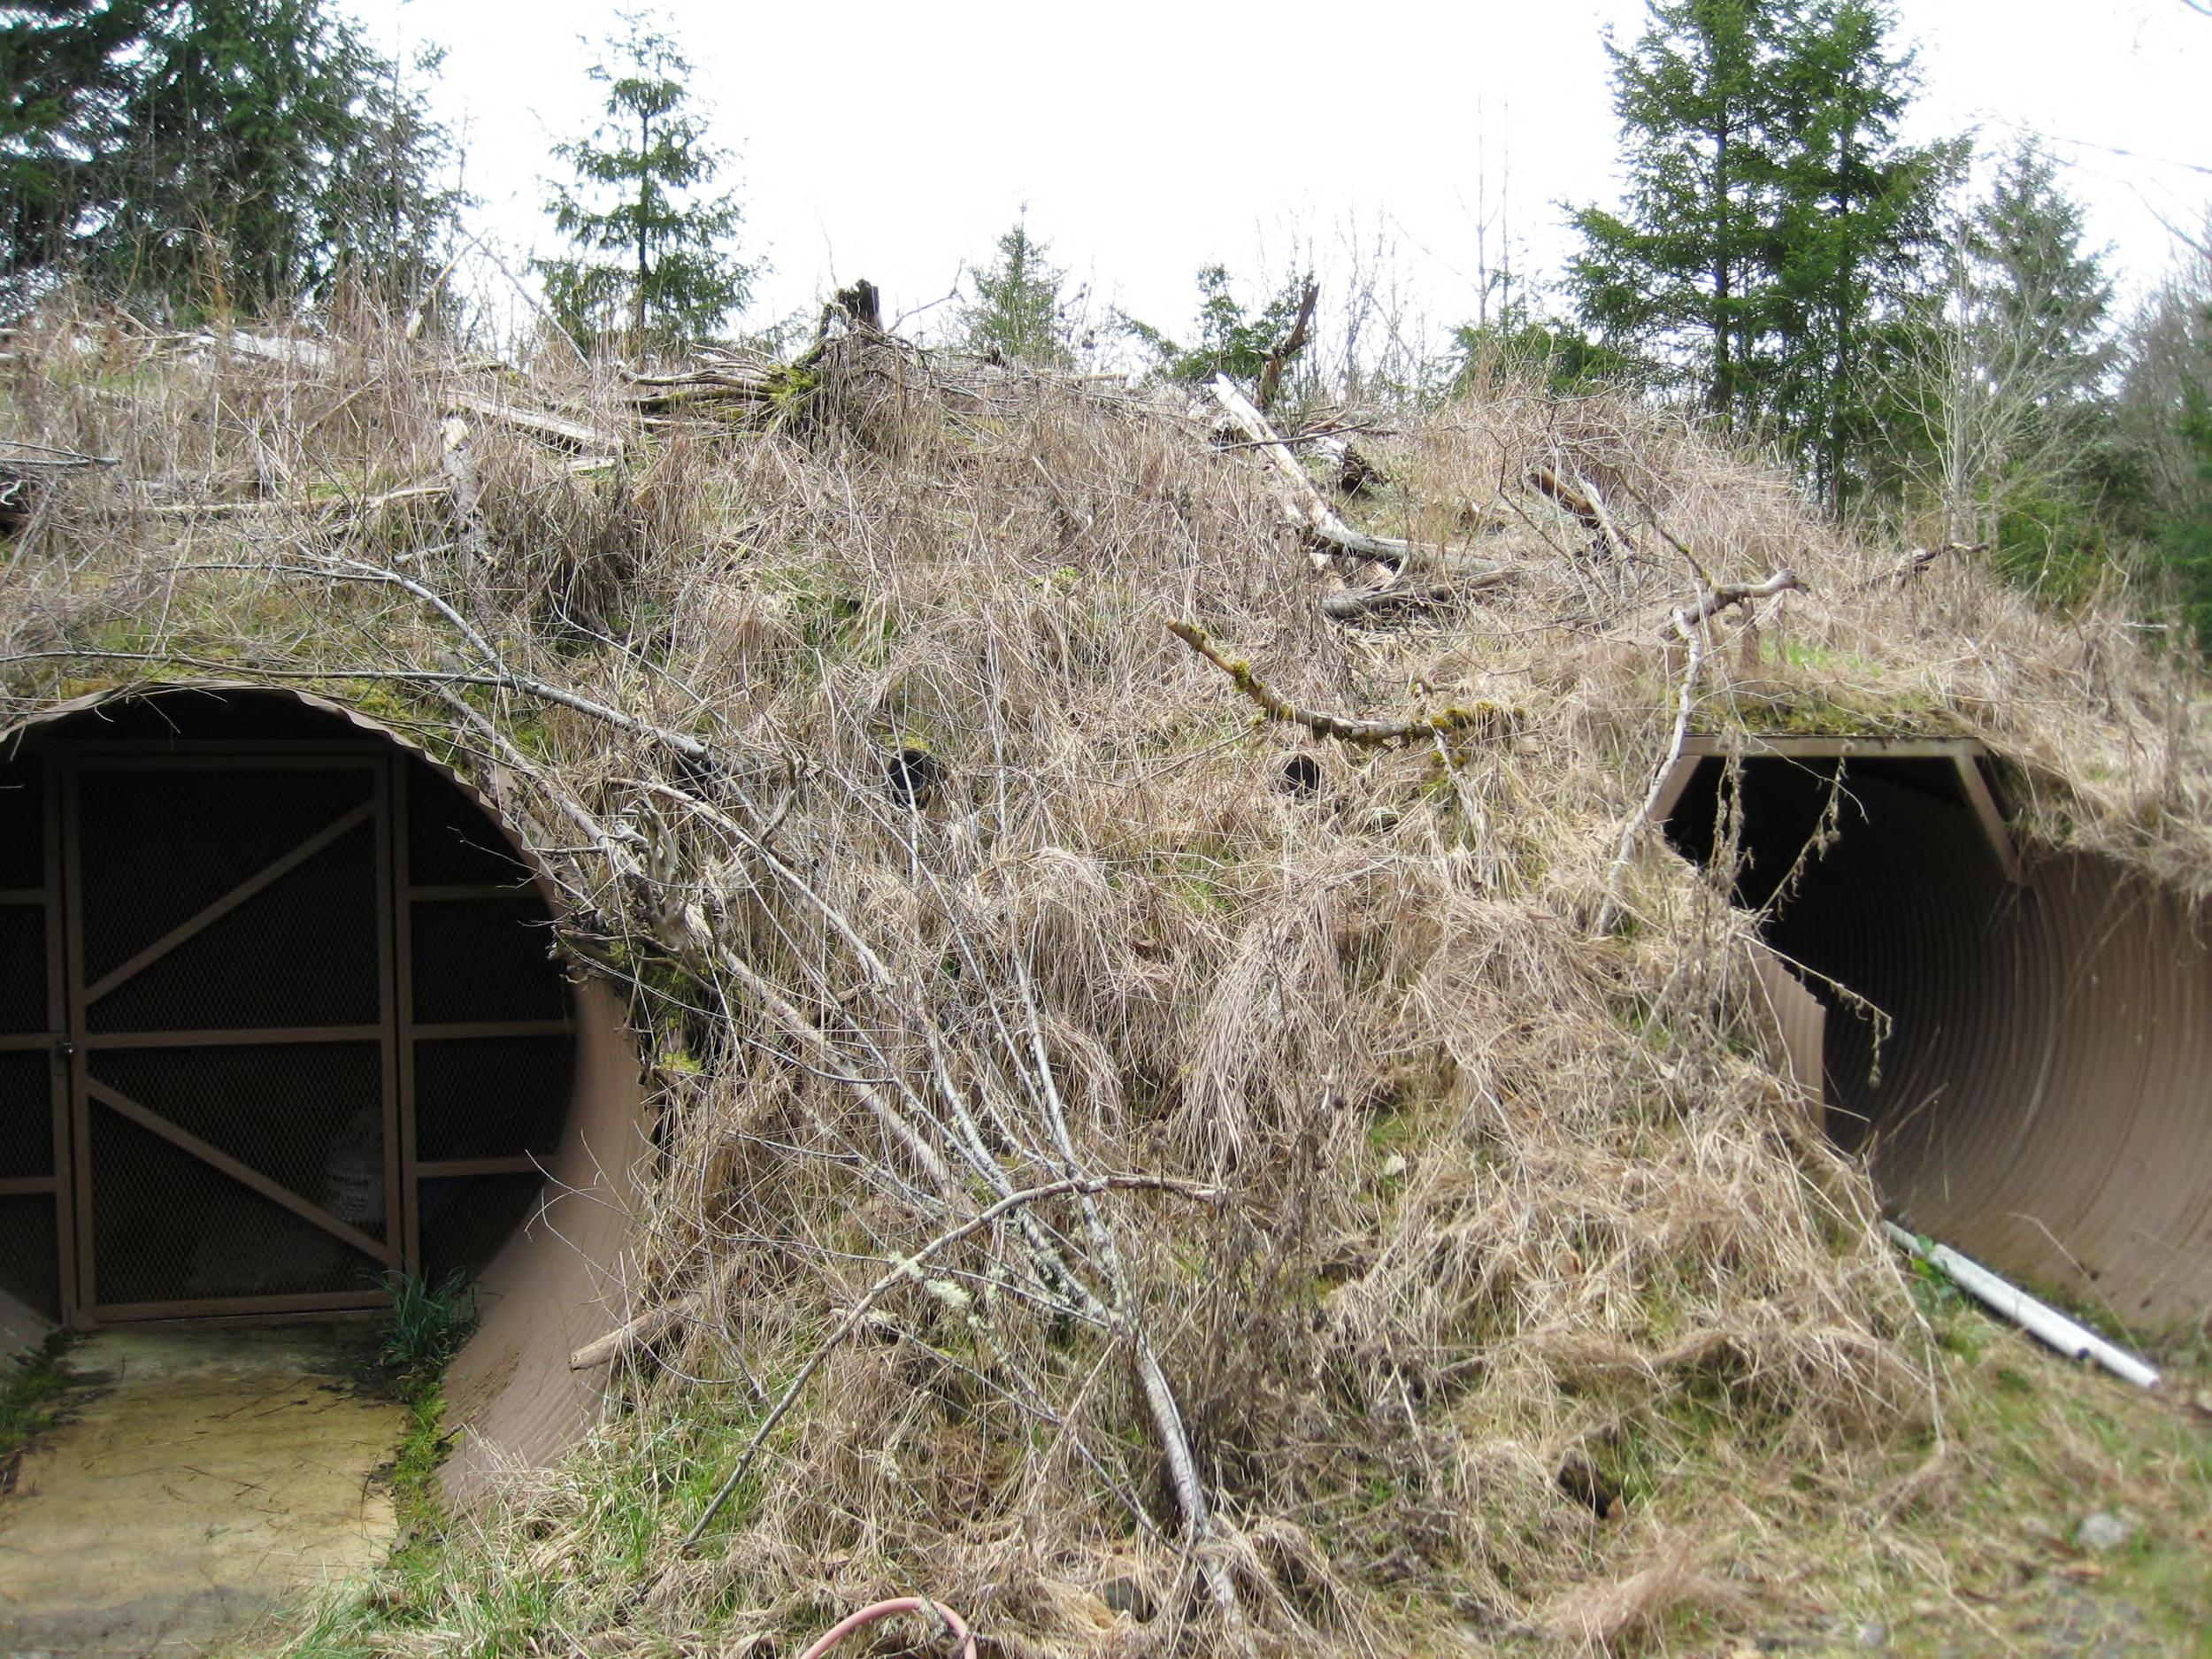 doomsday home bunkers